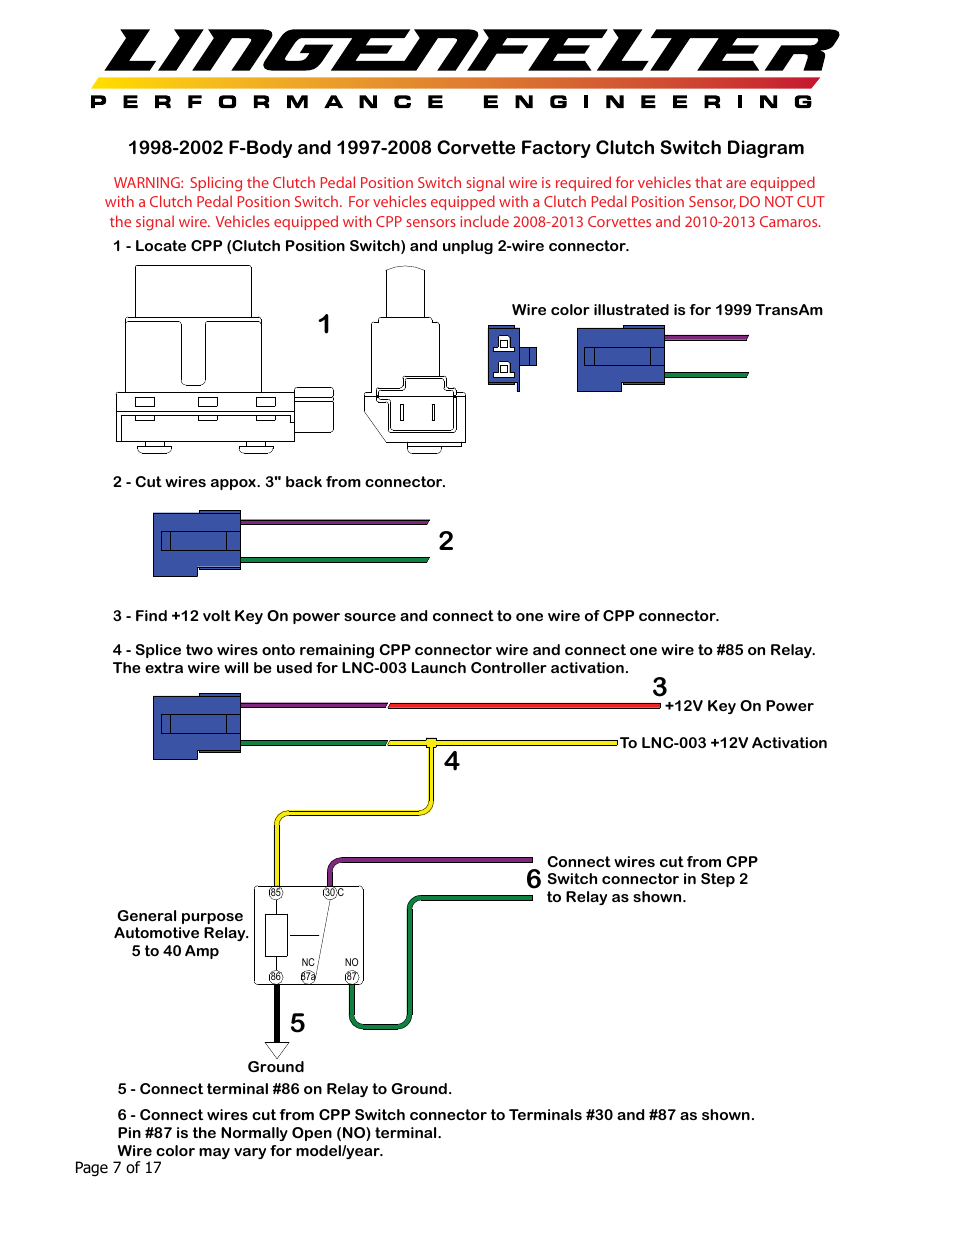 Lingenfelter L460105297 Lingenfelter LNC-003 Dual RPM Launch Controller  v2.7 User Manual | Page 8 / 18